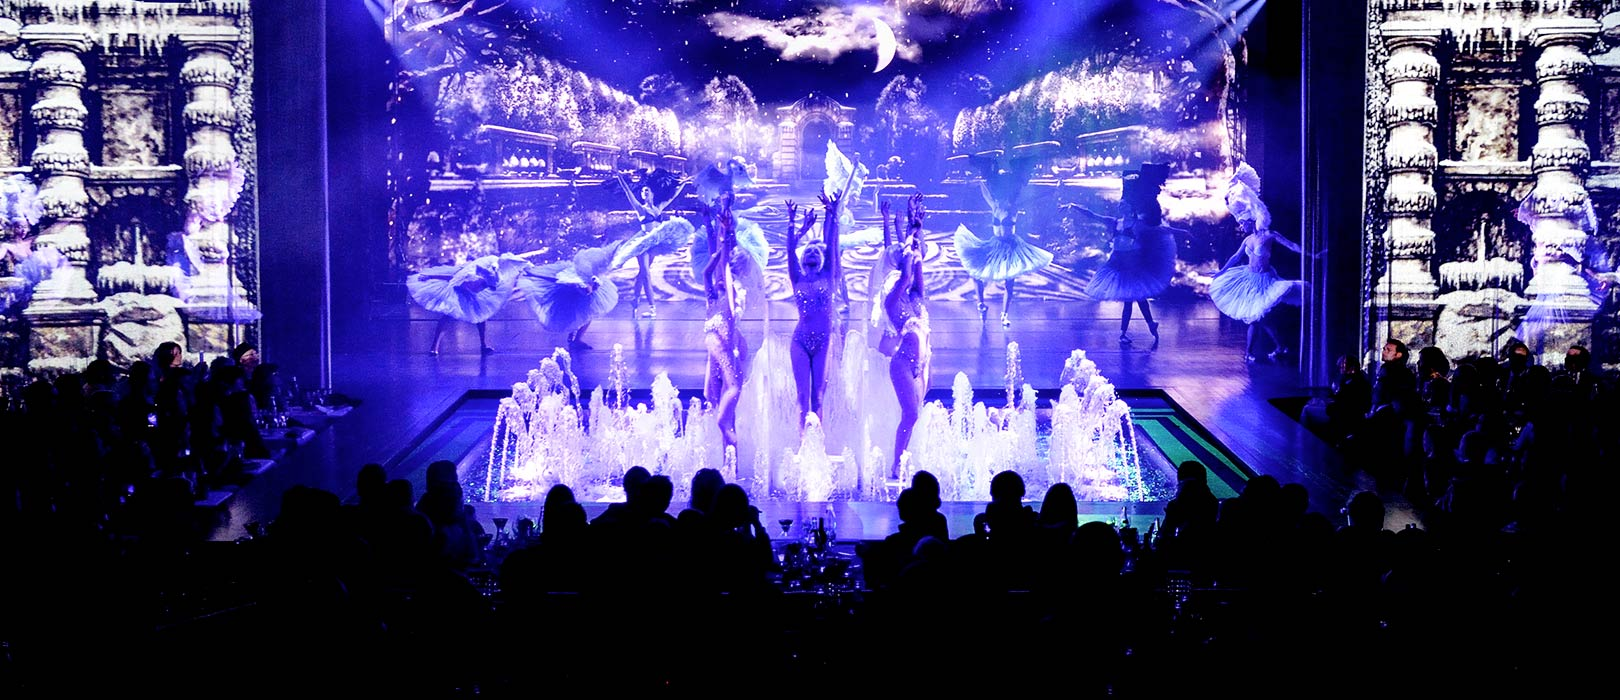 Waterfall view of the show